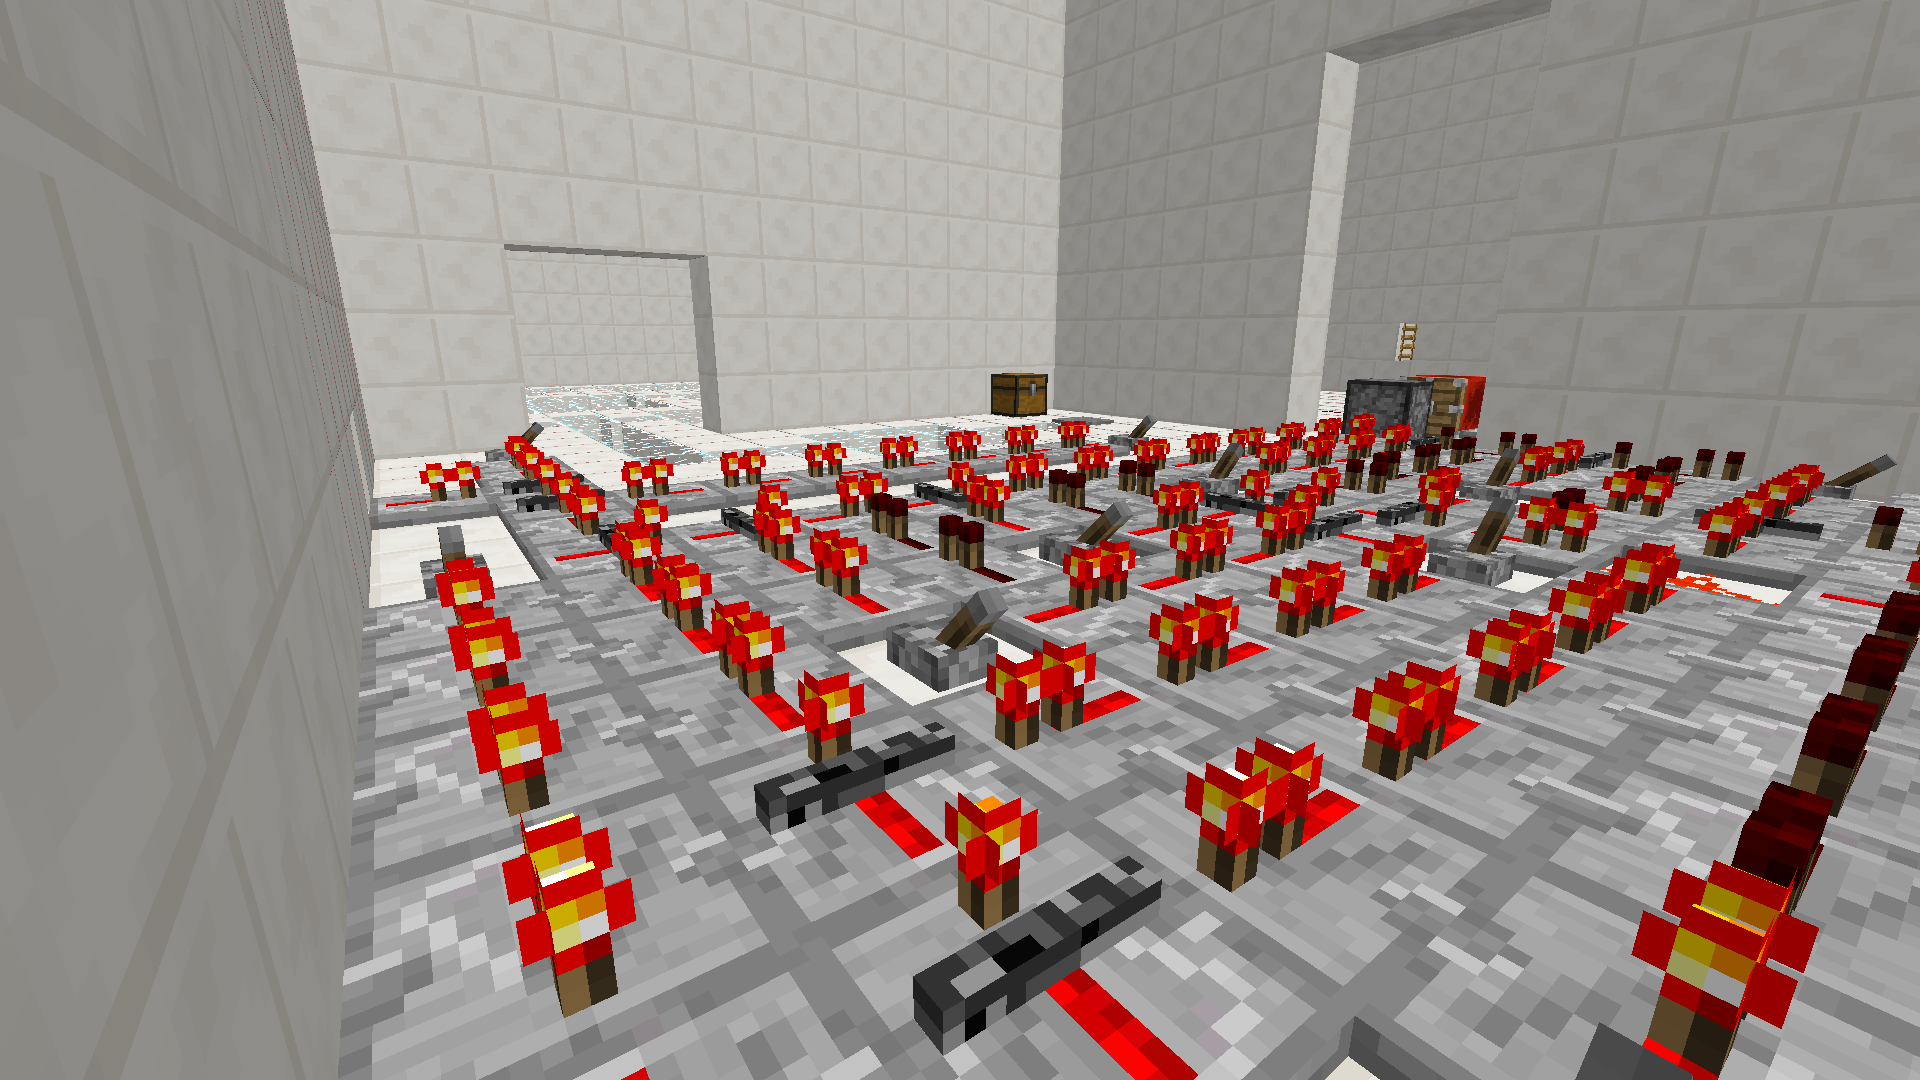 The-redstone-predicament-2-map-2